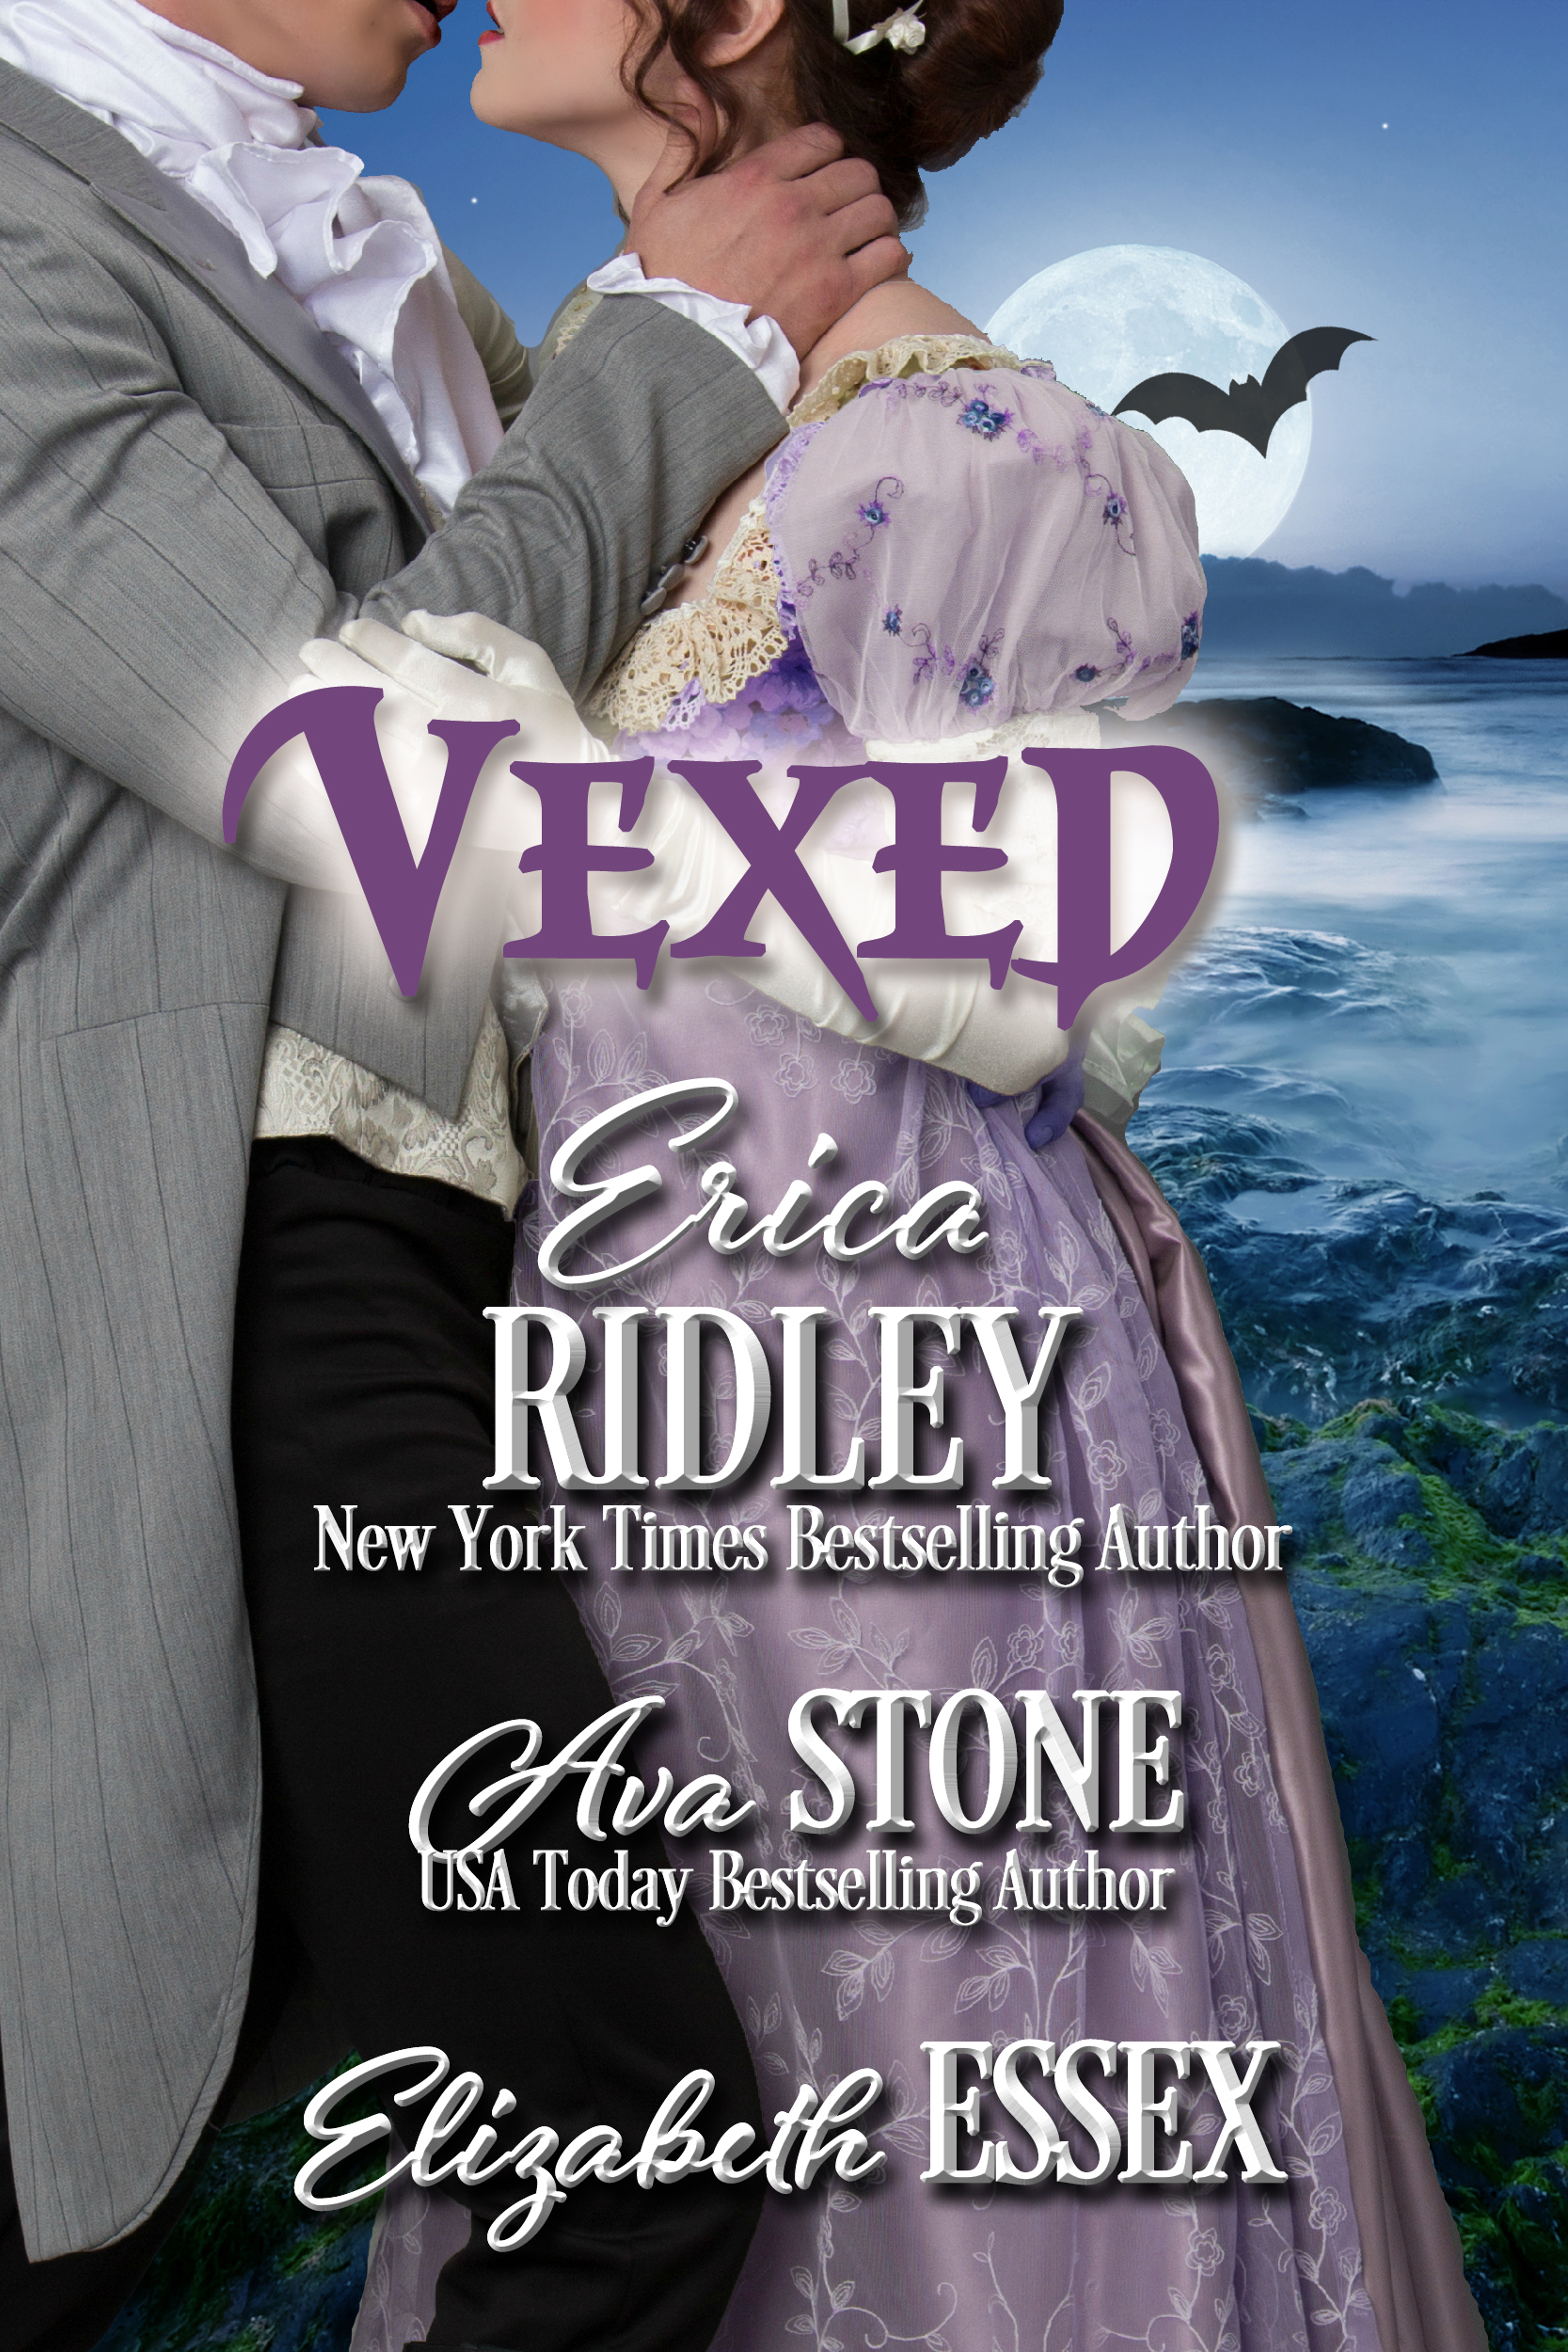 vexed cover image